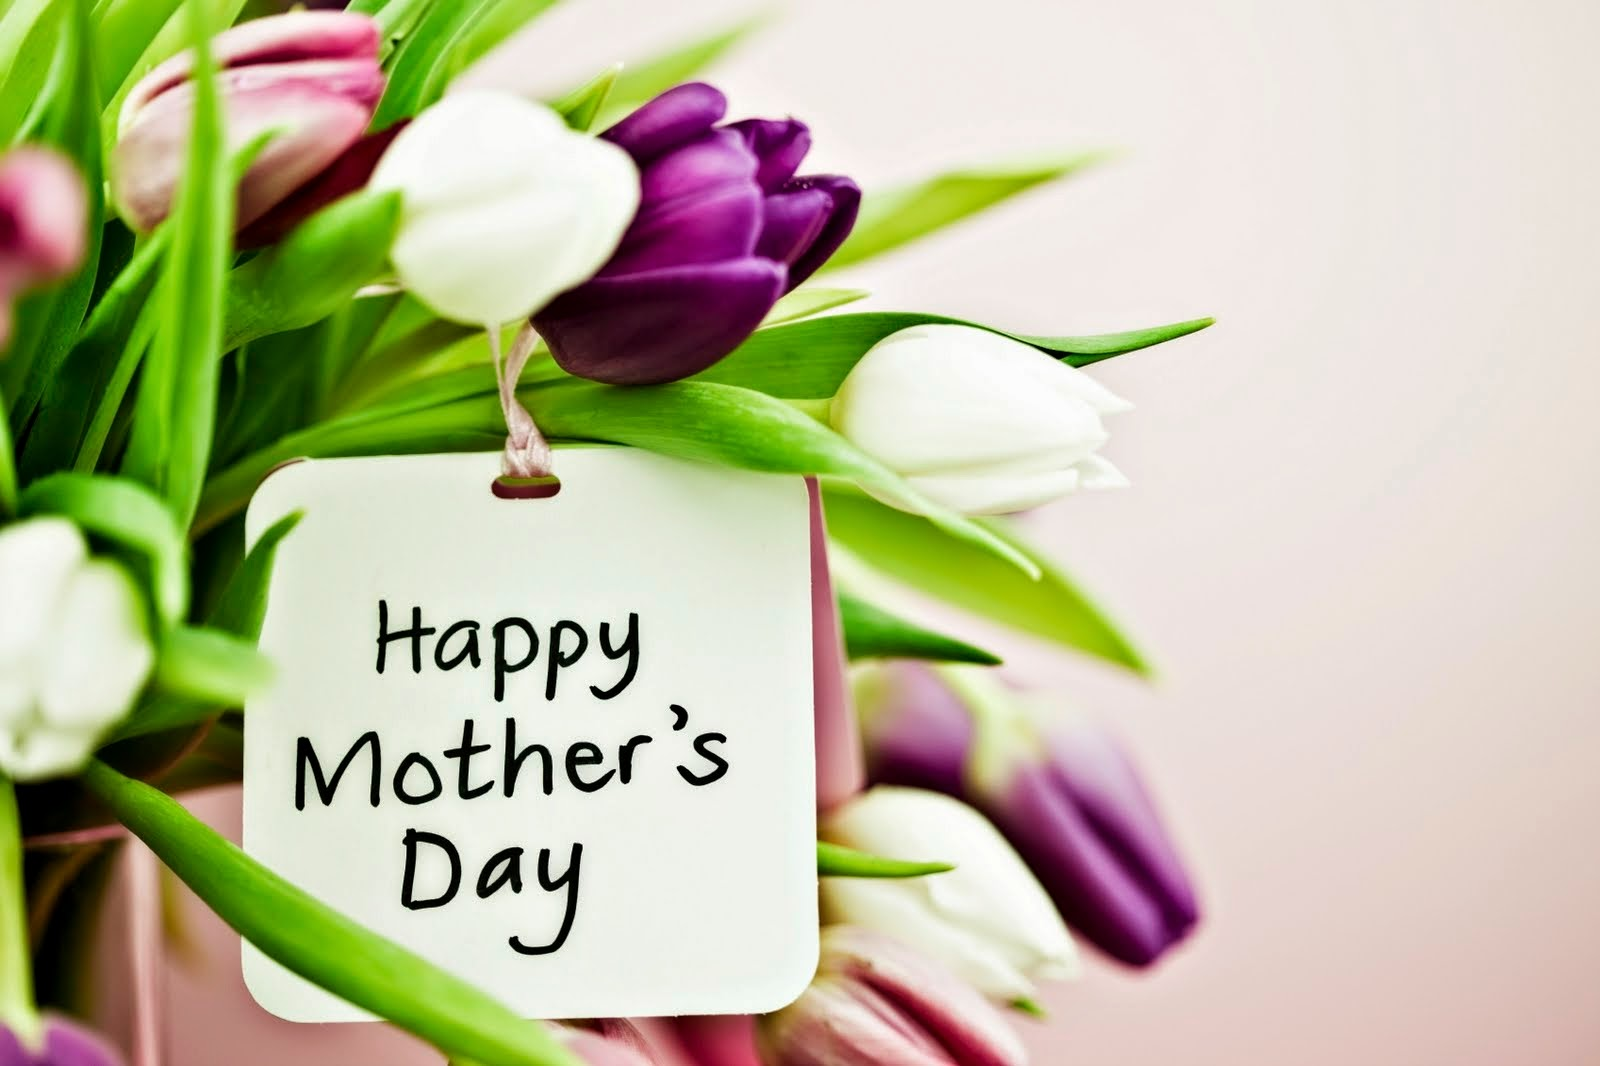 Flowers Delivery 4 U Send Mothers Day Flowers Birthday Flowers Online